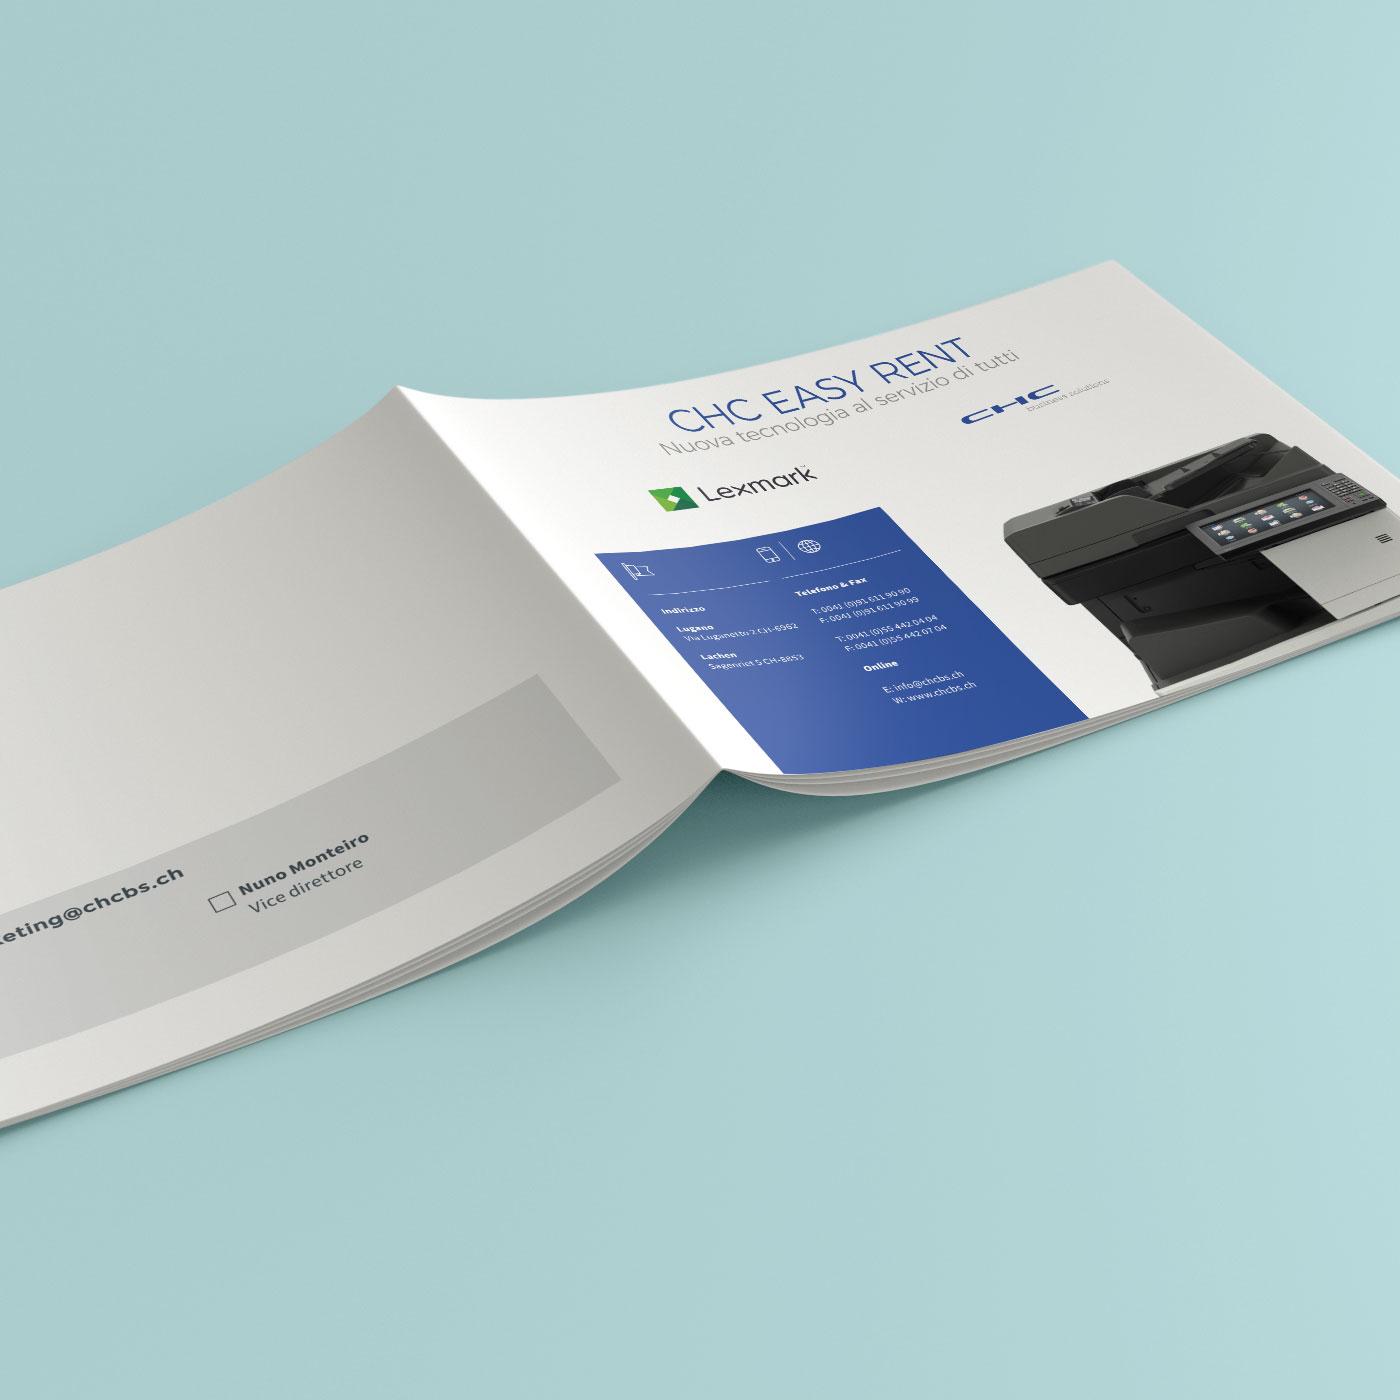 CHC Business Solutions Brochure